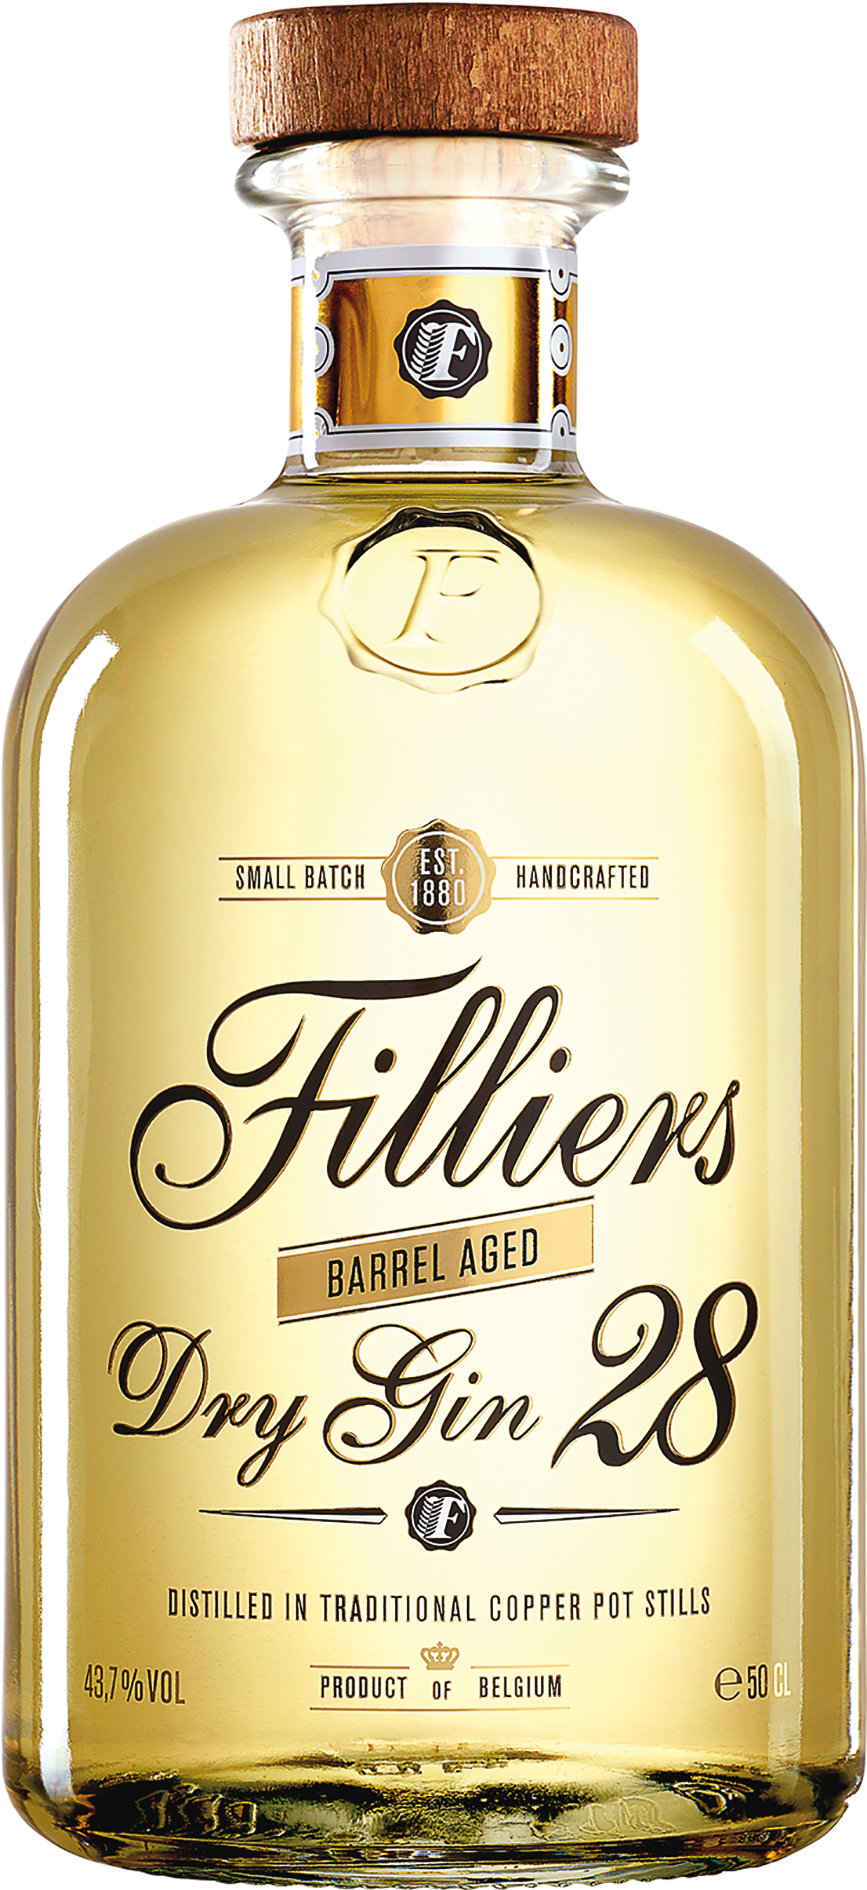 Filliers Dry Gin 28 - Barrel Aged Dry Gin